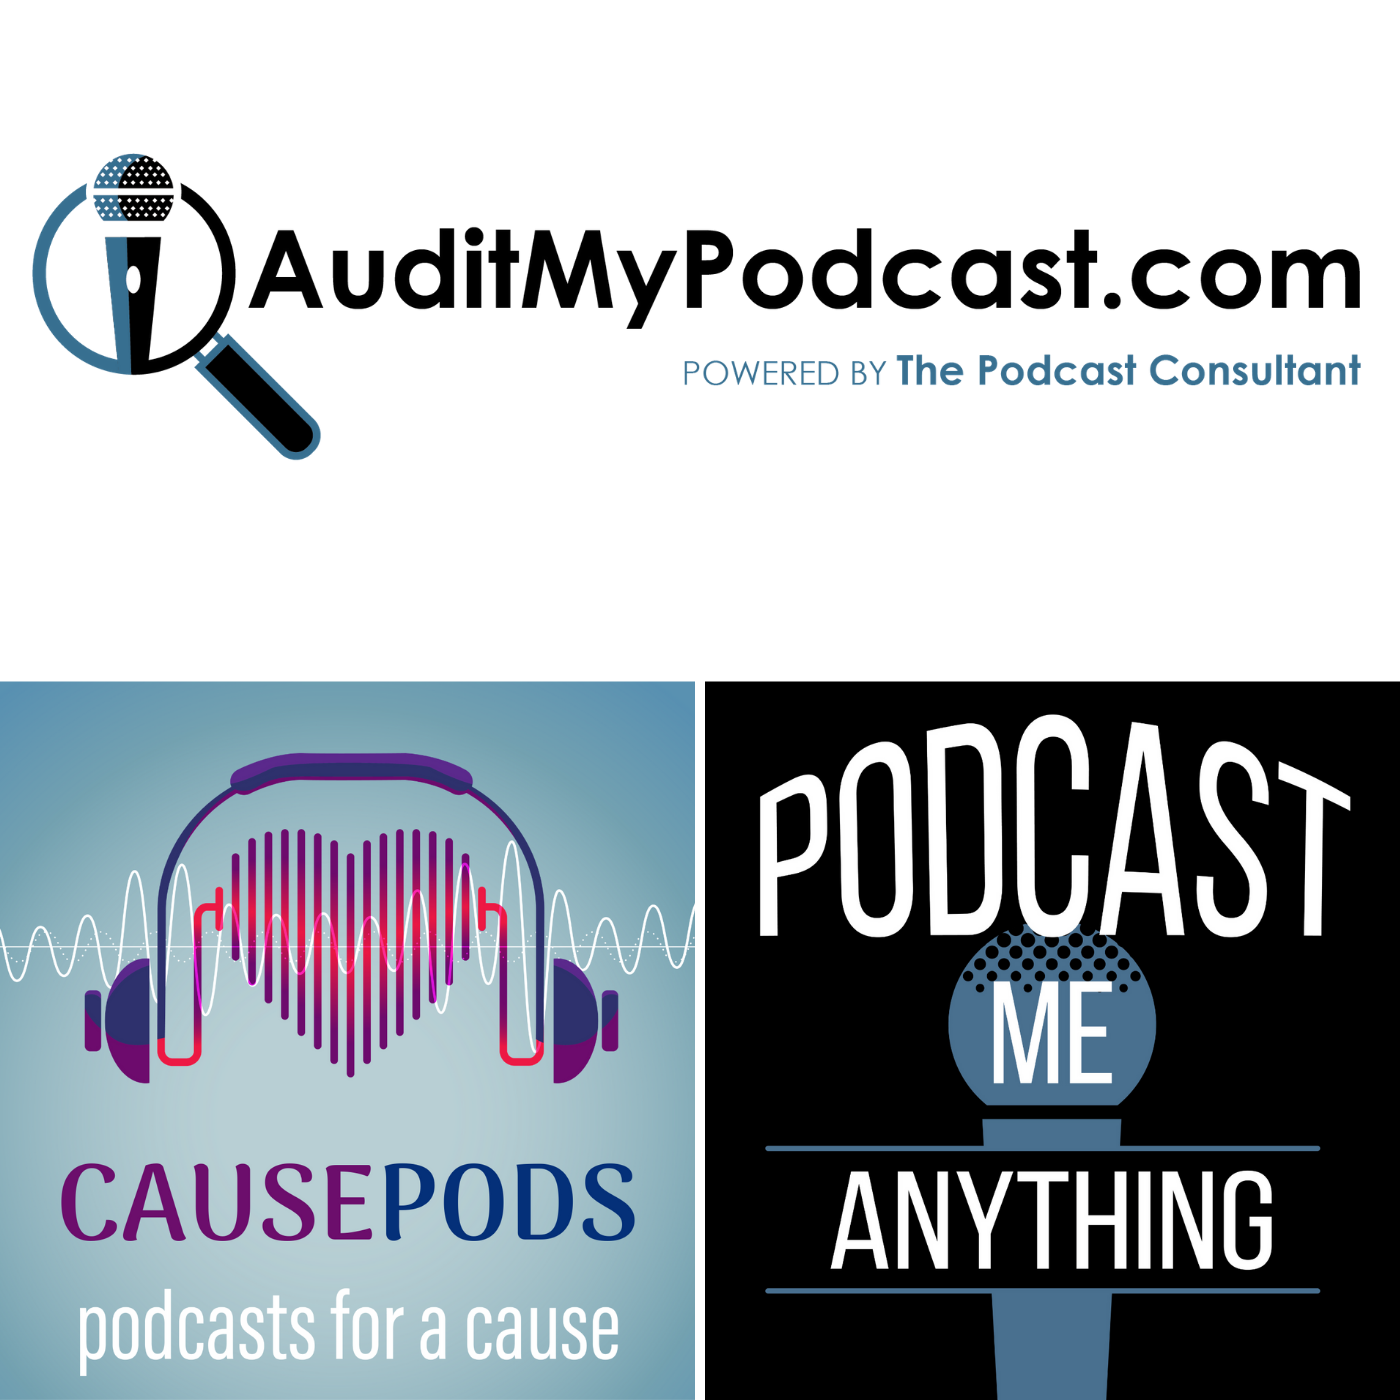 Audit My Podcast Causepods Podcast My Anything Mathew Passy Bio